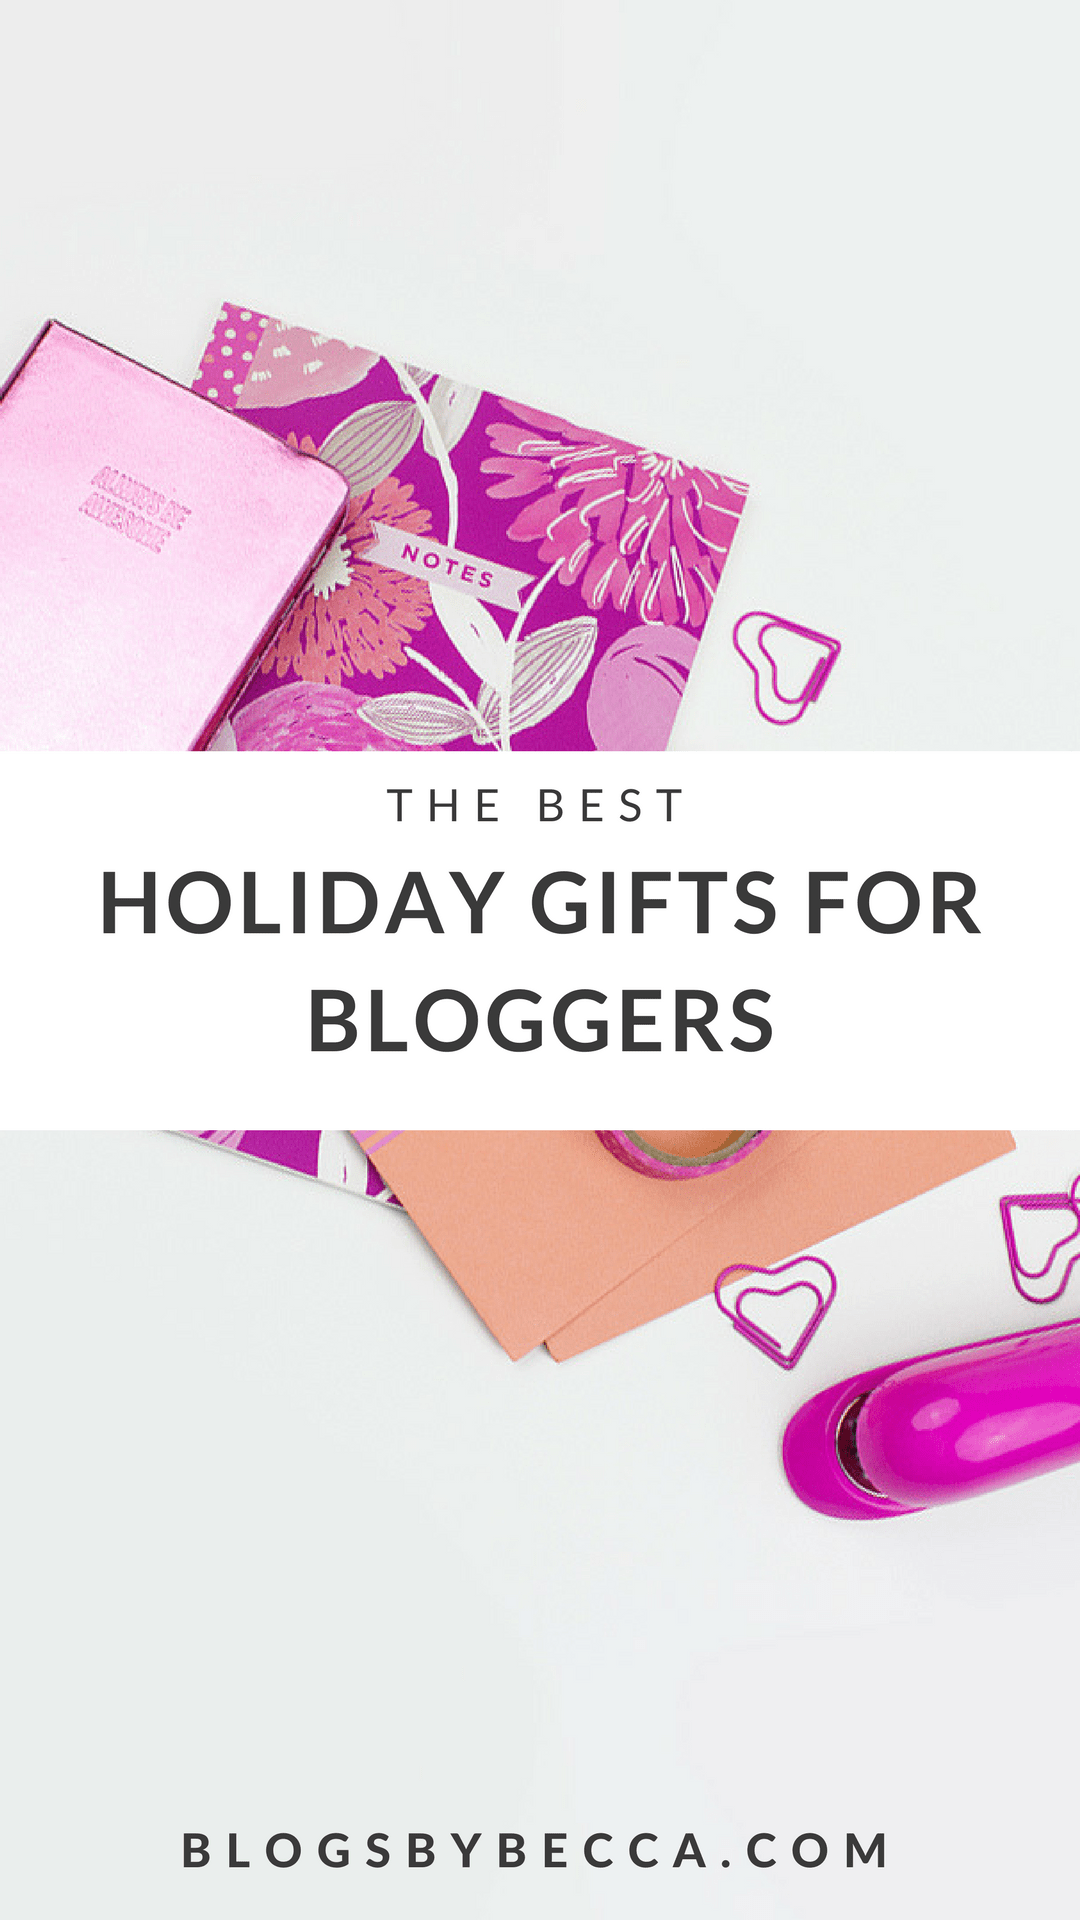 The Best Holiday Gifts for Bloggers! Click through to see the list! #blogger, #gift, #holiday, #giftguide, #blogging